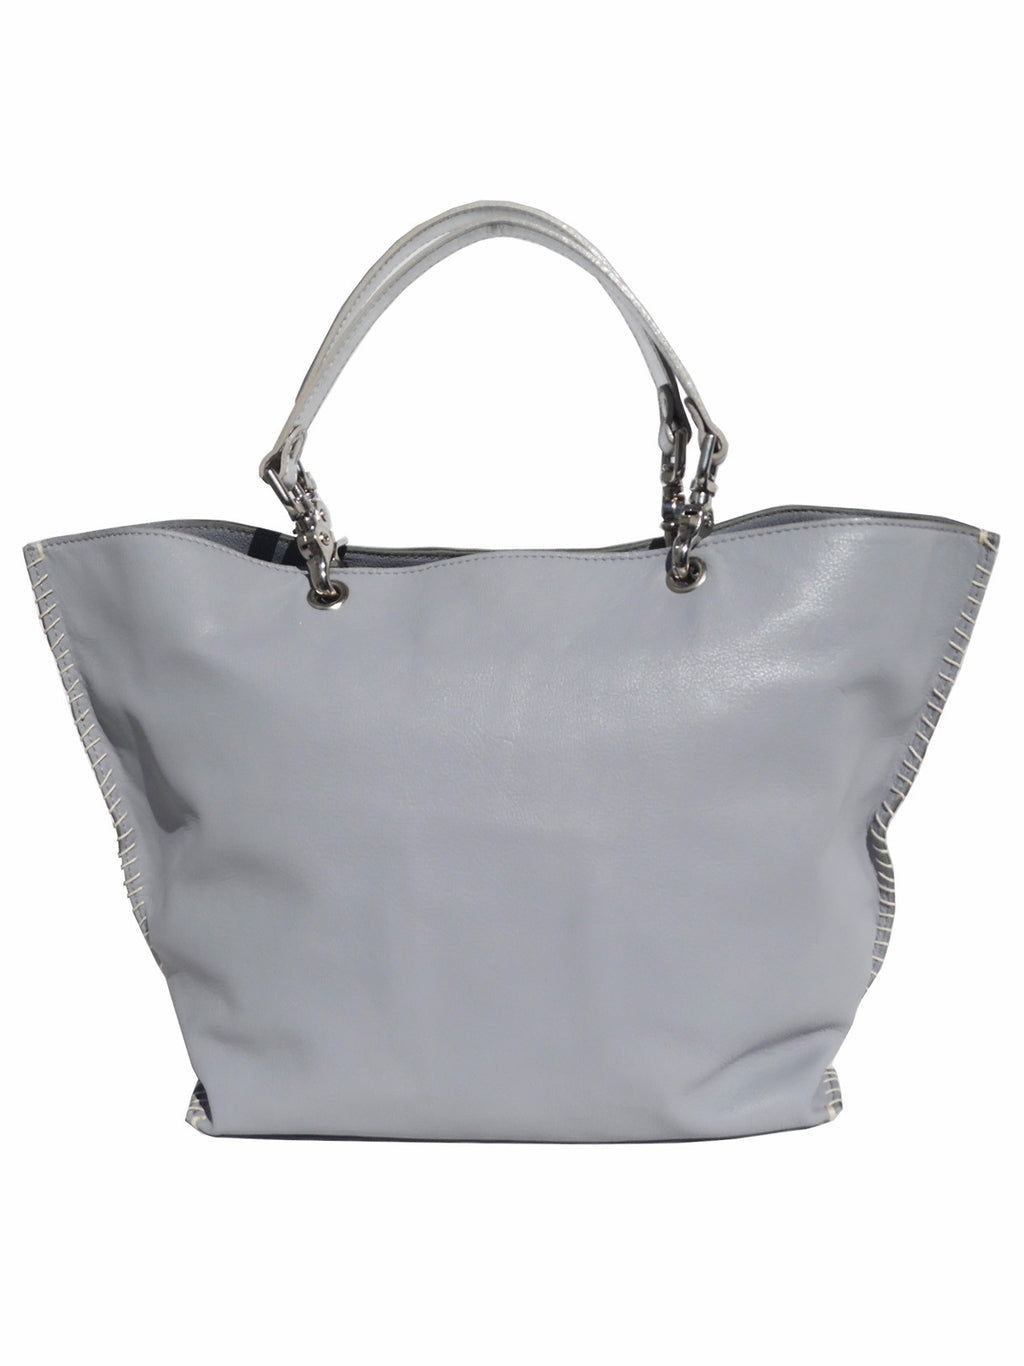 Gamidi 2 Tote Napa Leather Smoke